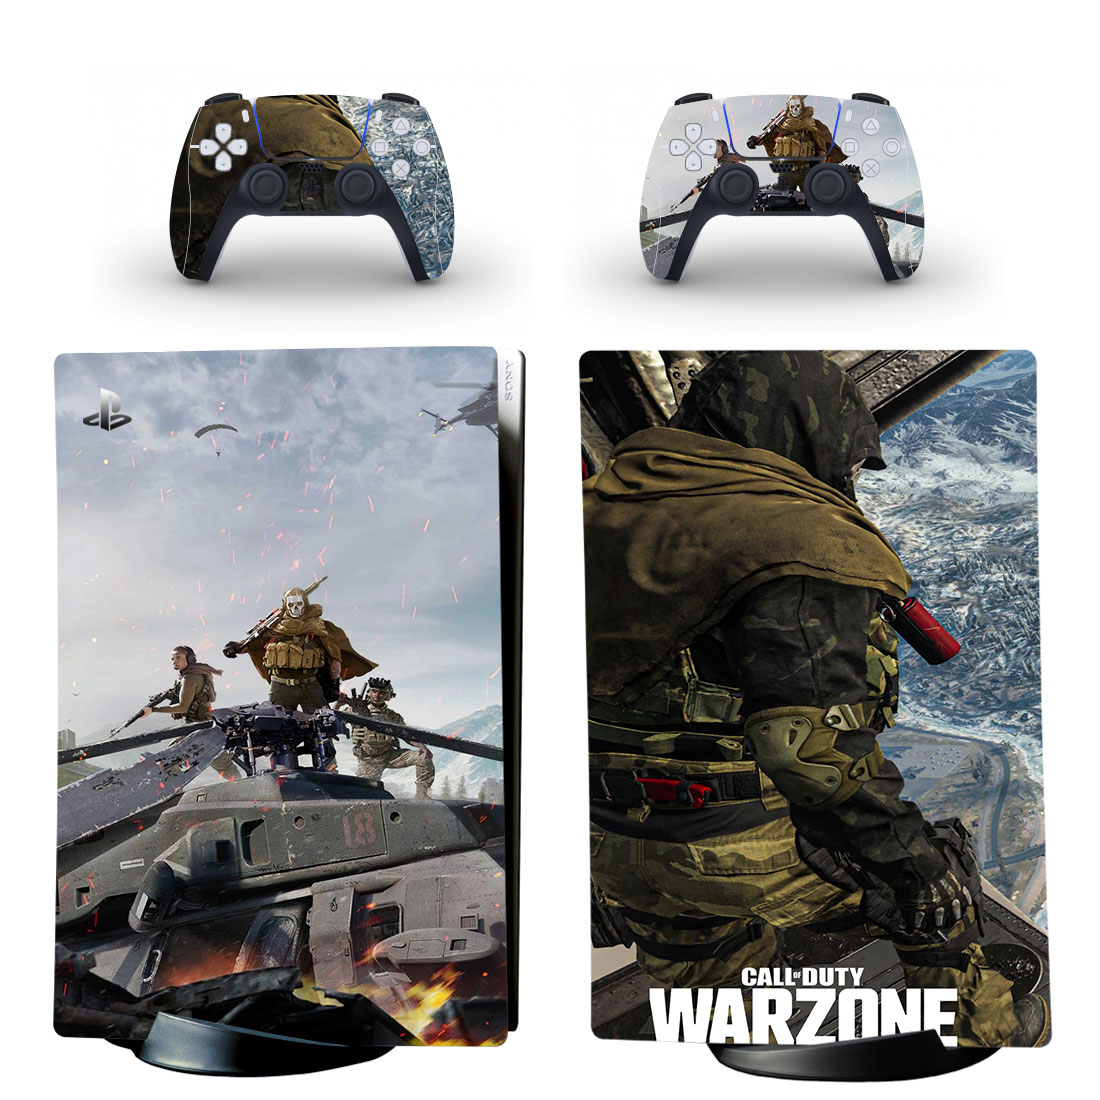 Call Of Duty Warzone PS5 Digital Edition Skin Sticker Decal Design 3